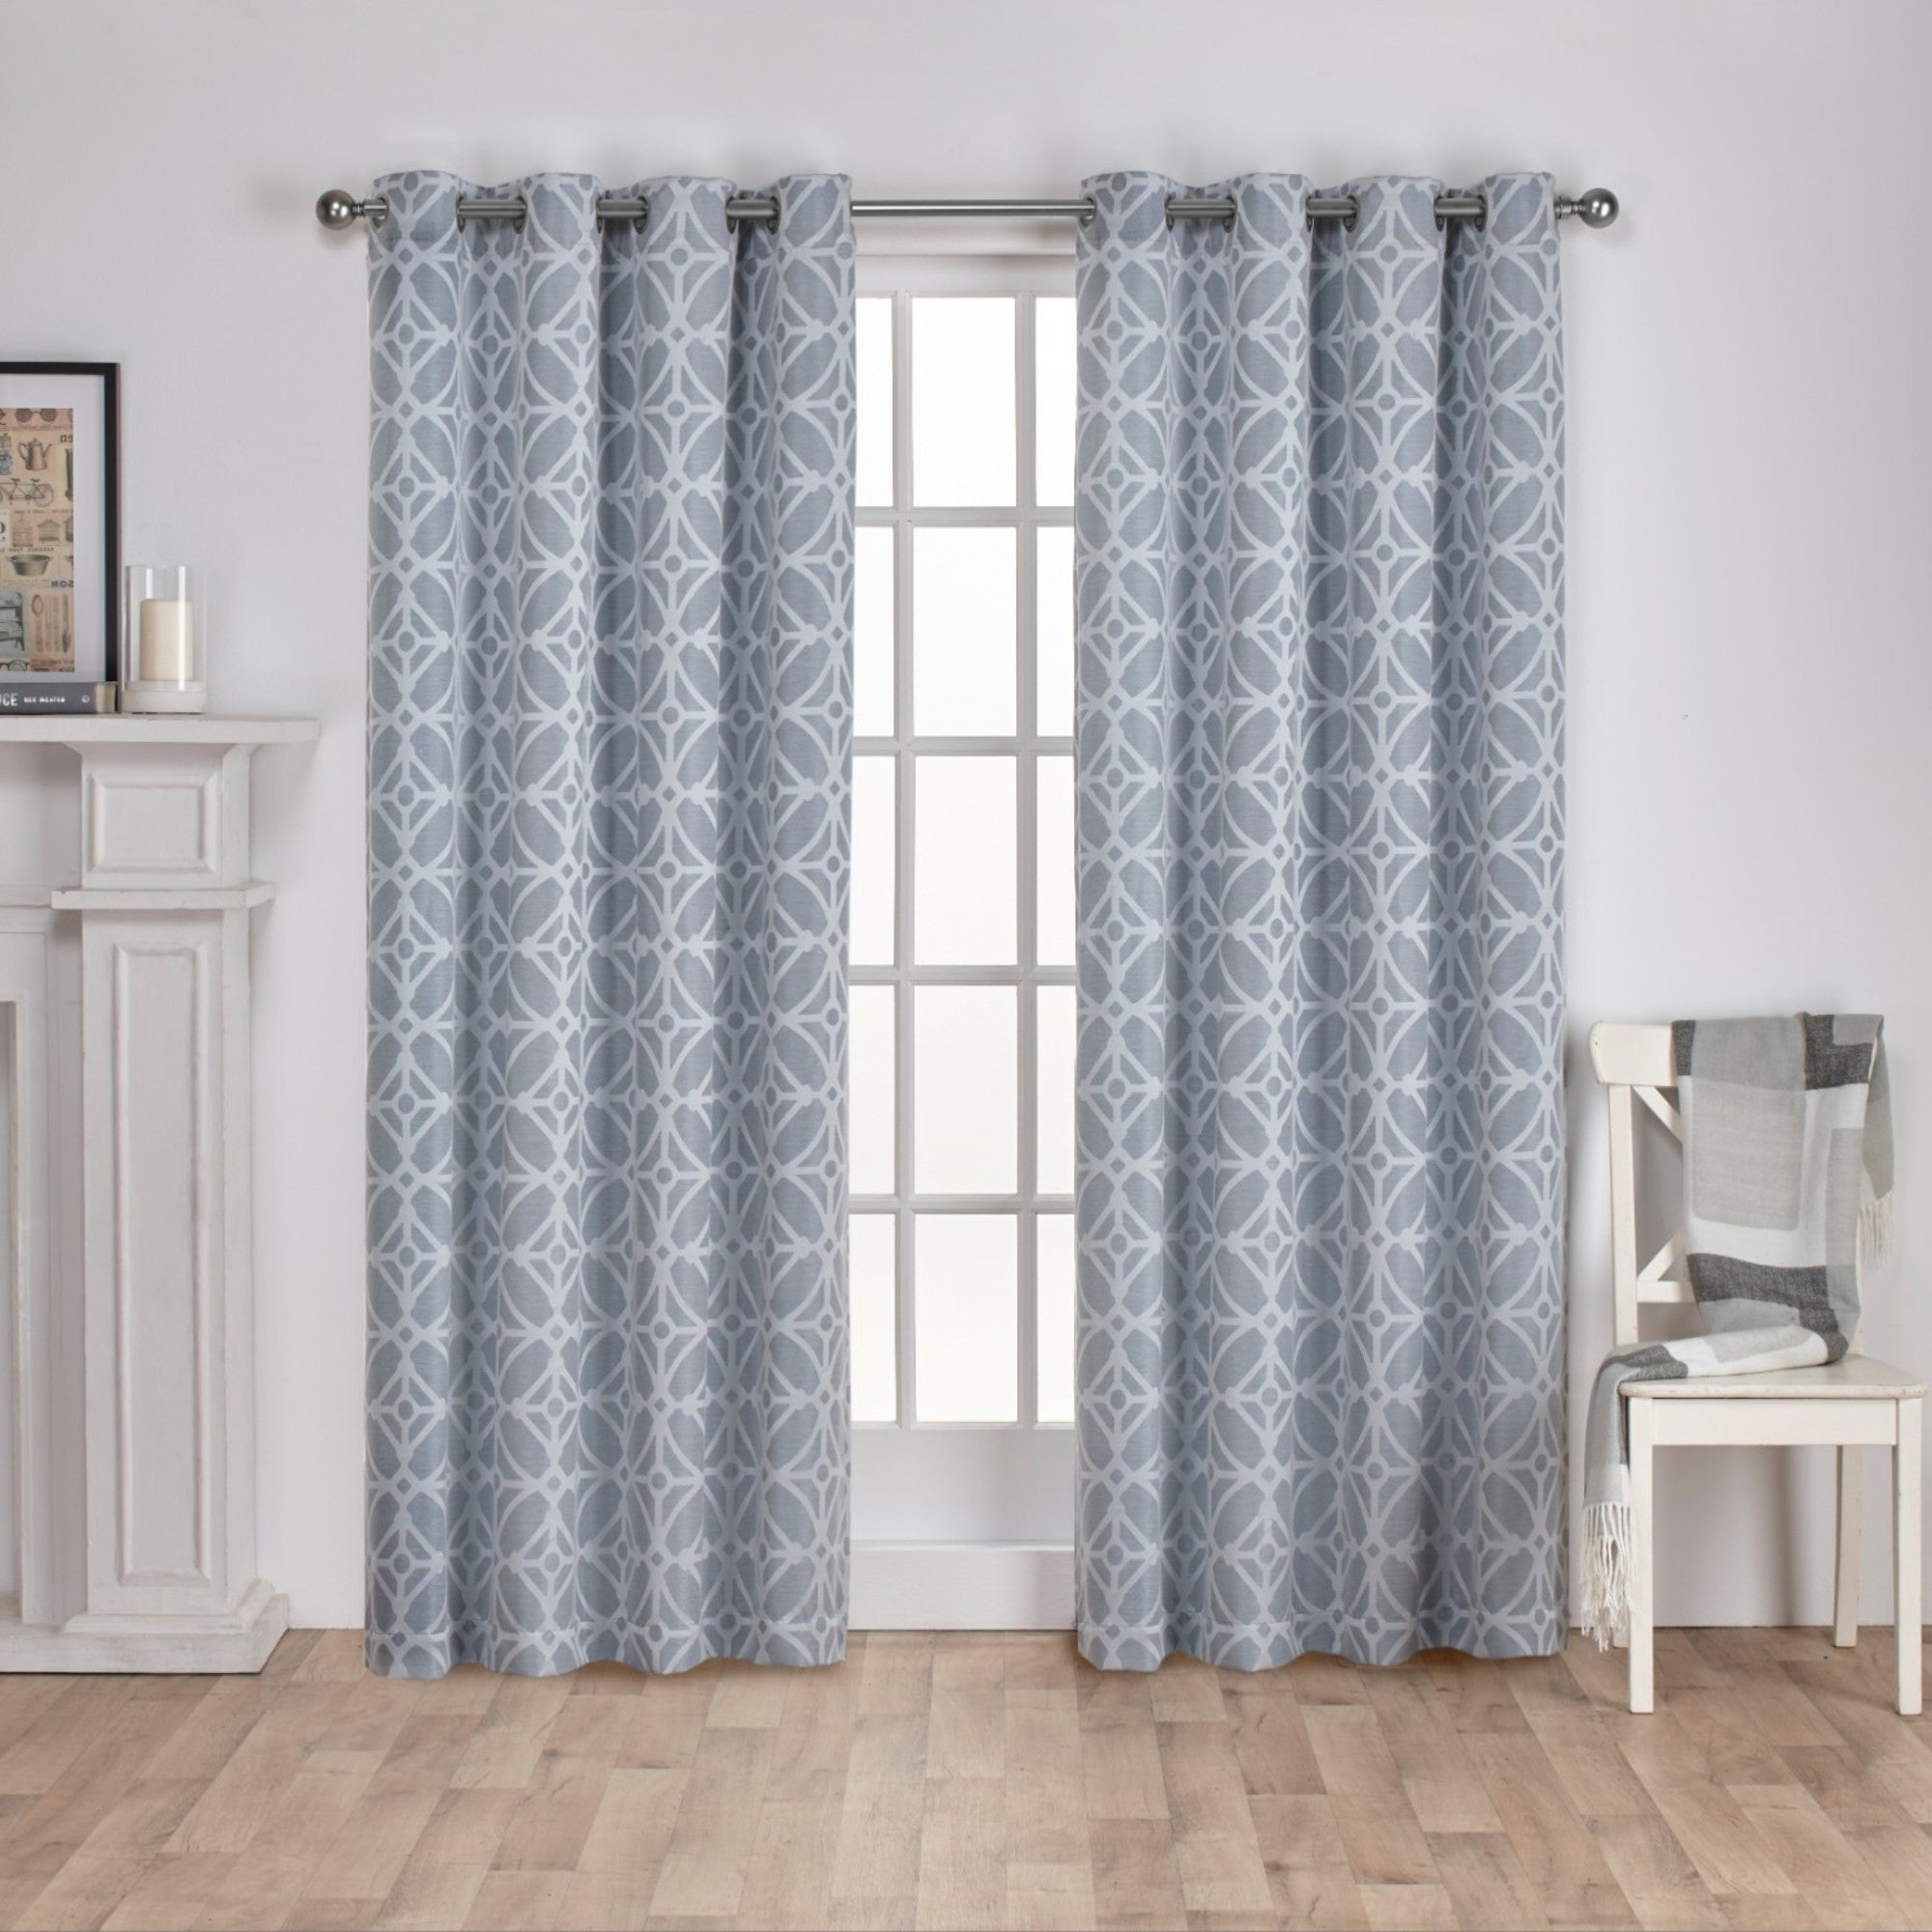 The Curated Nomad Market St Jacquard Grommet Top Curtain Panel Pair Pertaining To Preferred The Curated Nomad Duane Jacquard Grommet Top Curtain Panel Pairs (View 13 of 21)